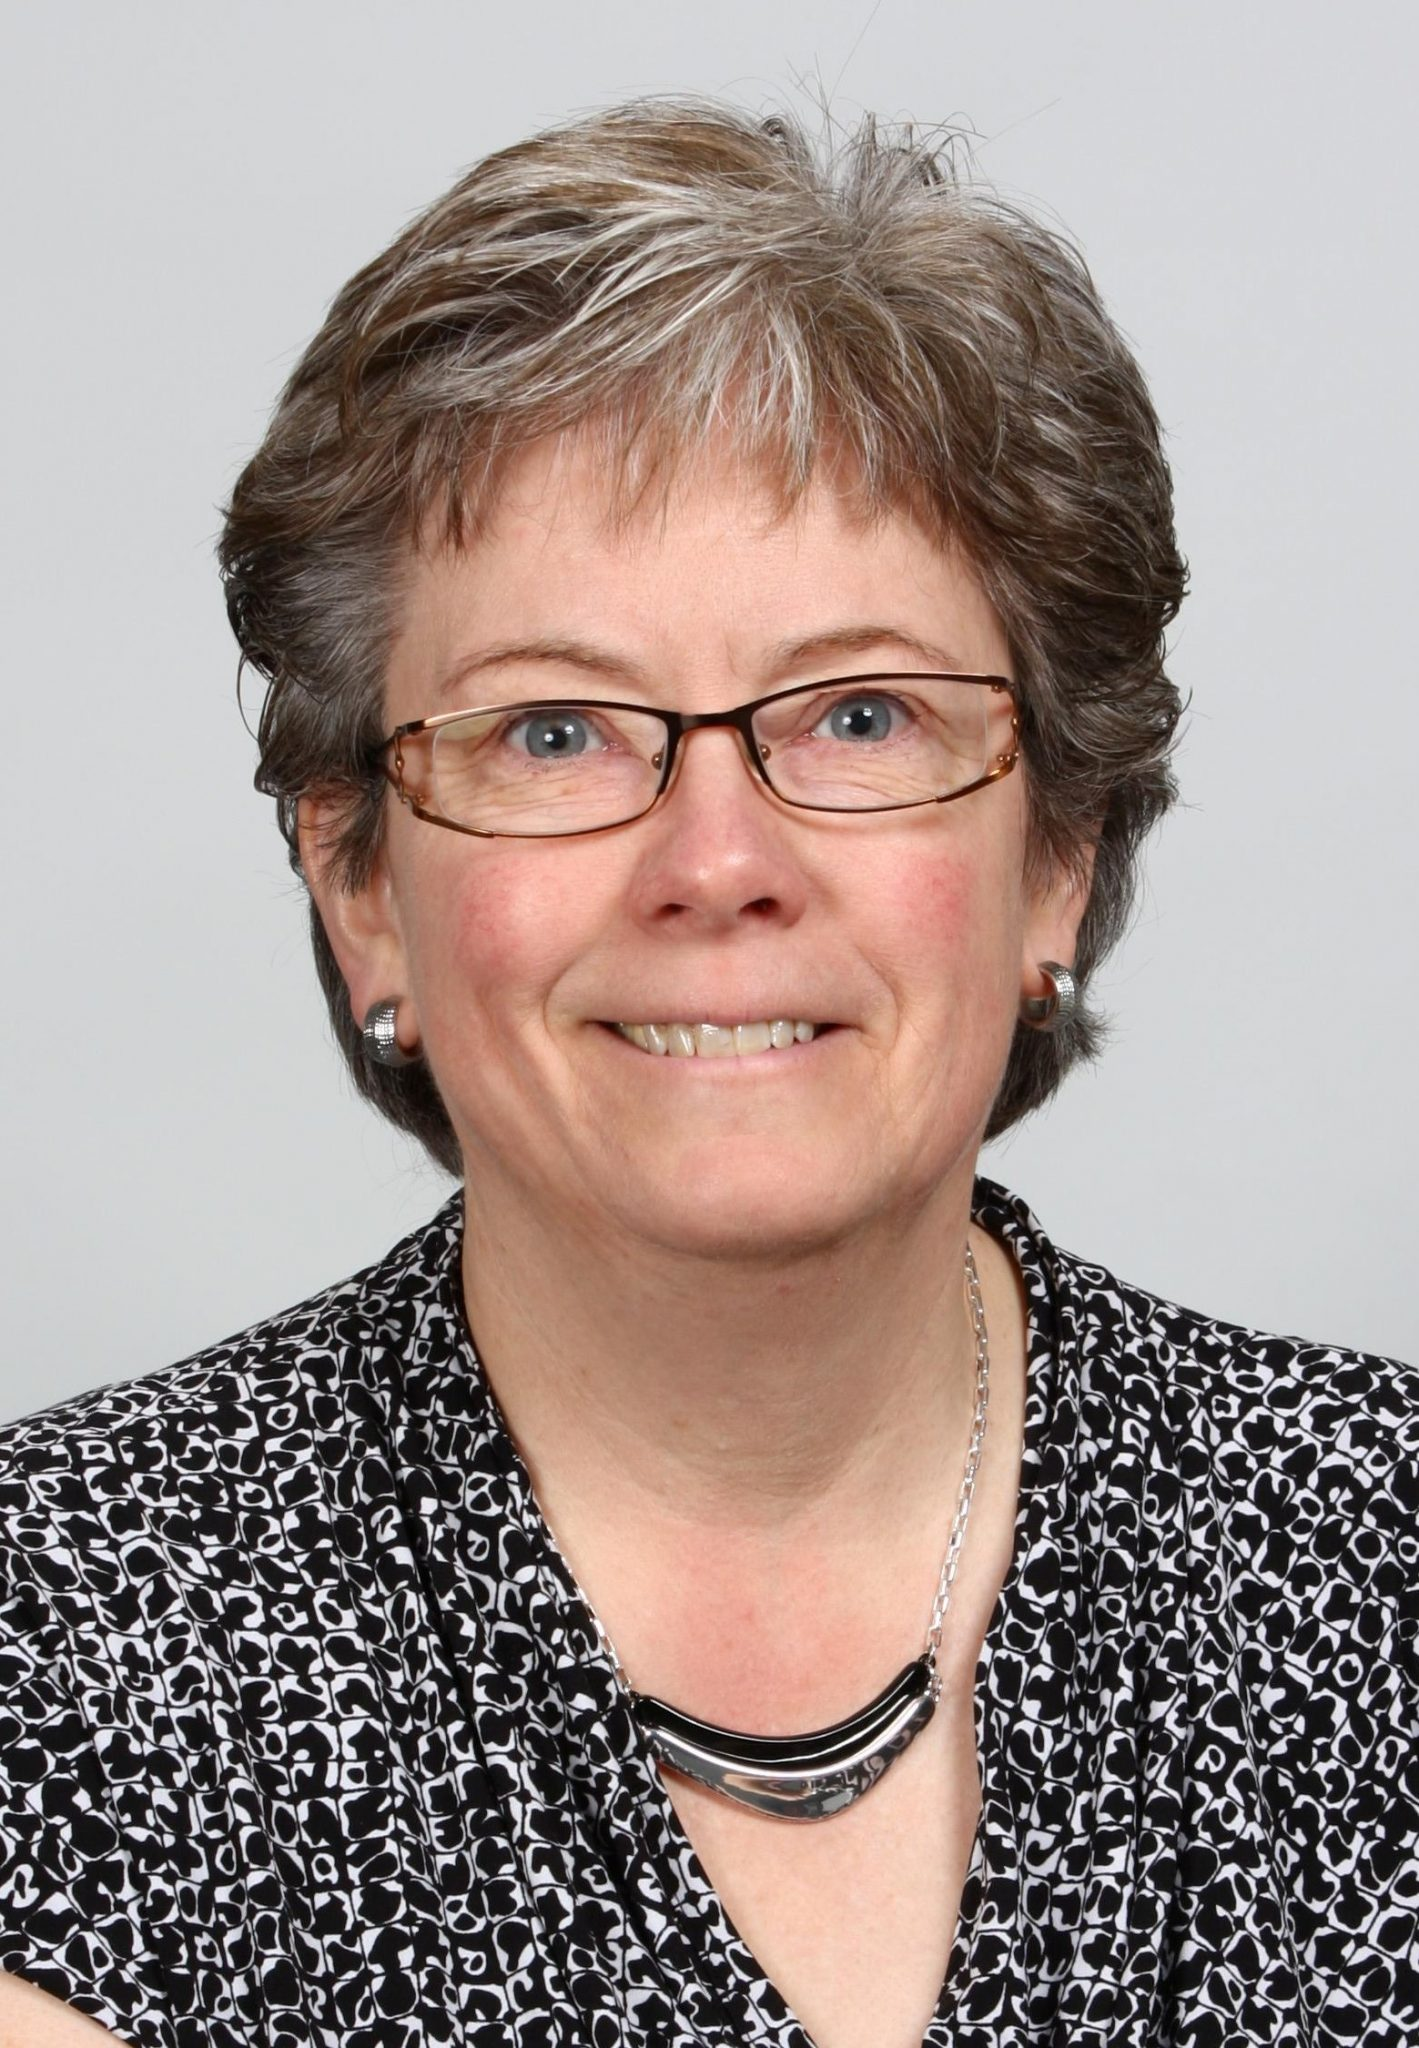 Karin Lofstrom - participant, volunteer, leader, mentor and advocate for girls and women in sport and physical activity both in Canada and internationally.